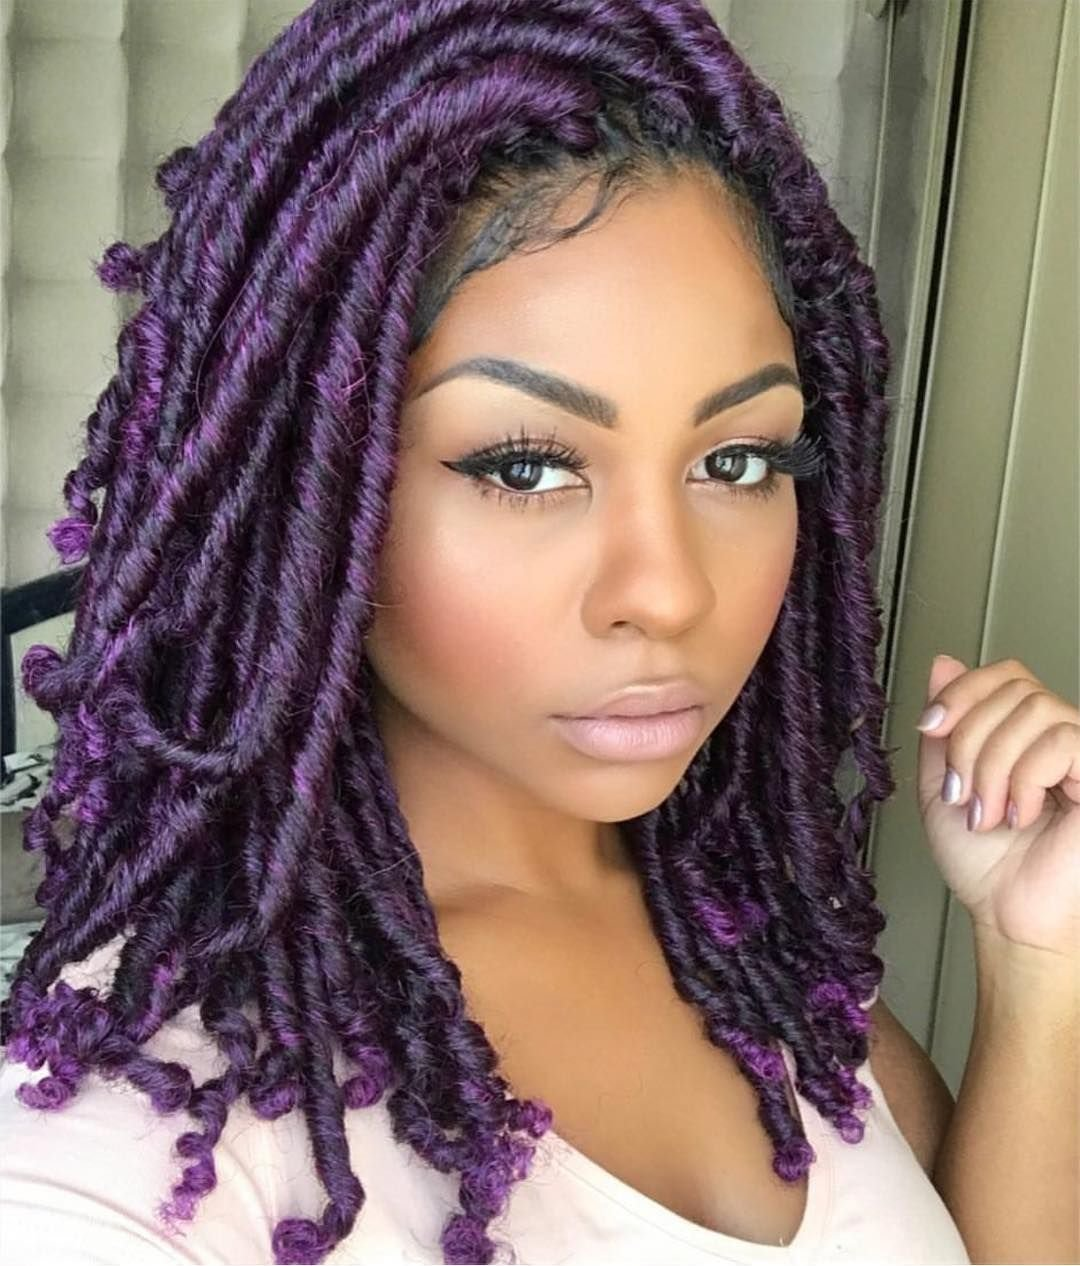 The Best Buy This High Quality Wigs For Black Women Lace Front Wigs Pictures